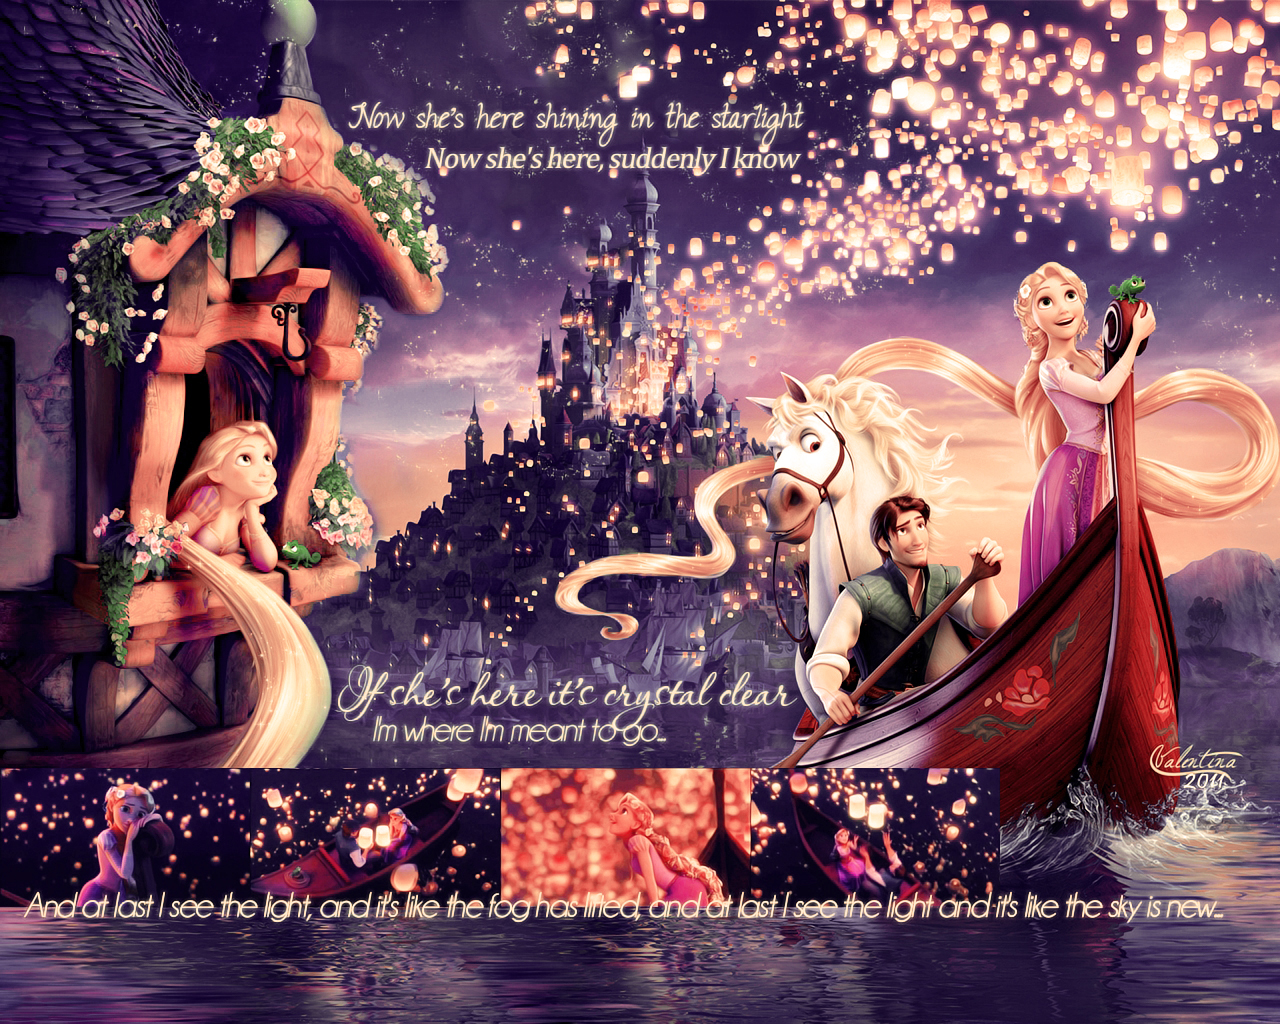 75 tangled disney wallpaper on wallpapersafari - Tangled wallpaper ...